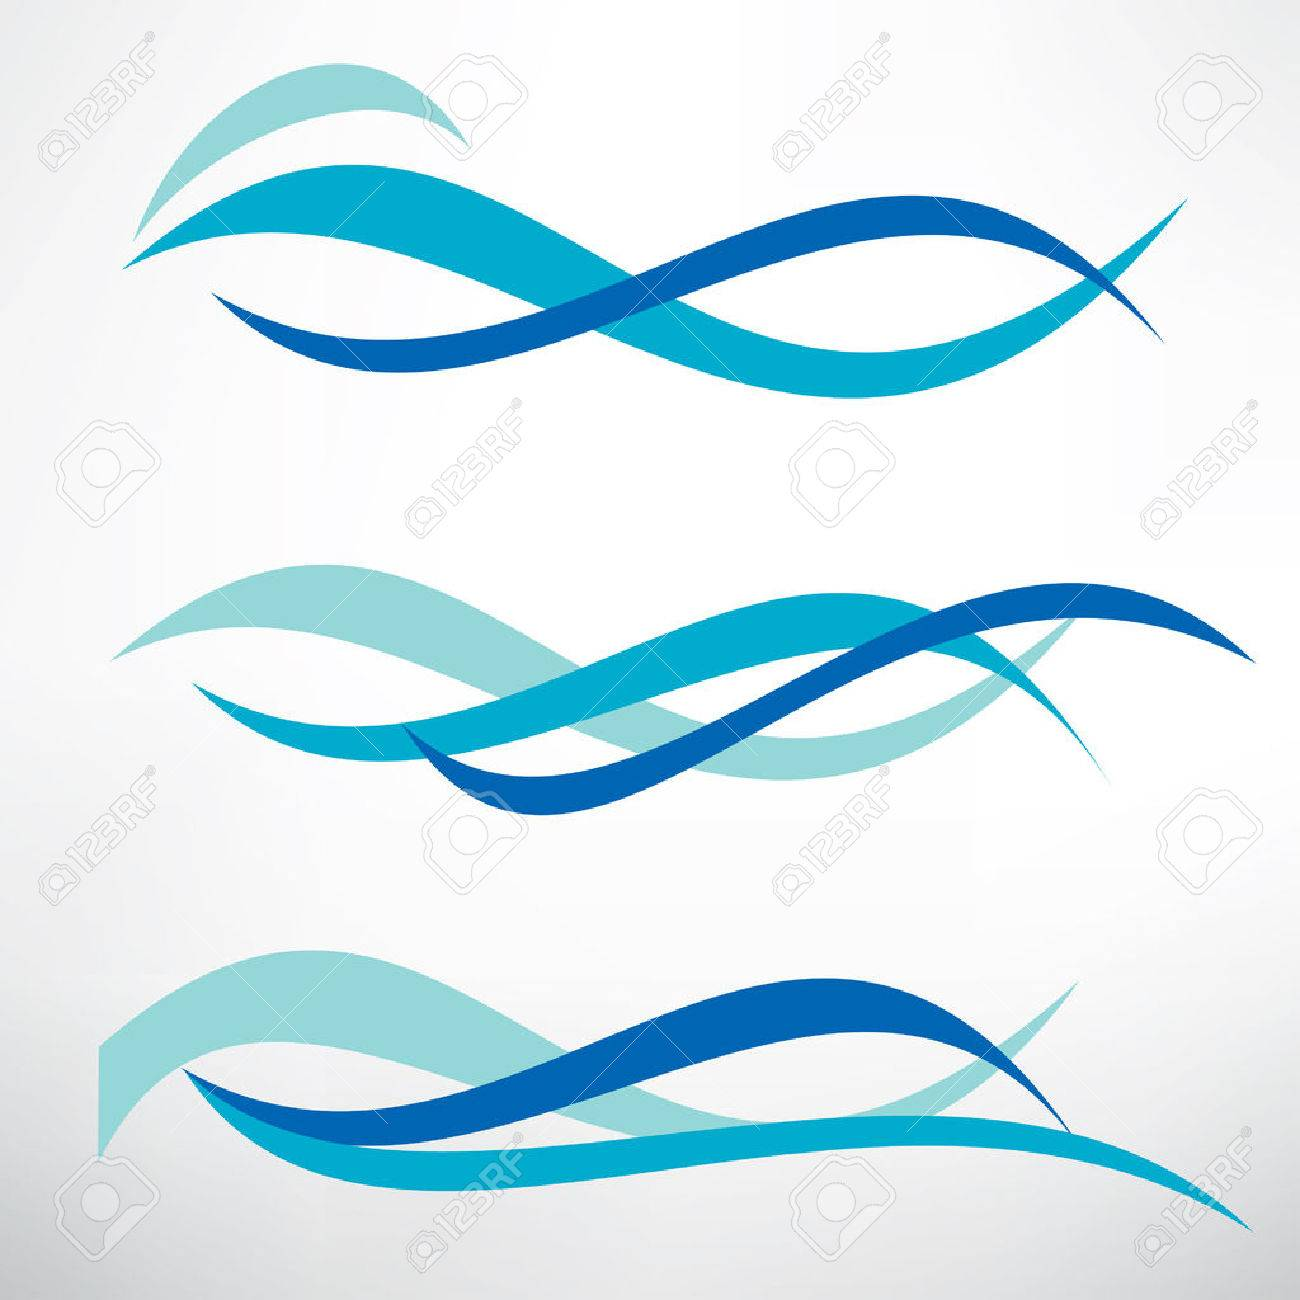 water wave set of stylized vector symbols design elements for rh 123rf com wave vector png wavevector spectrum